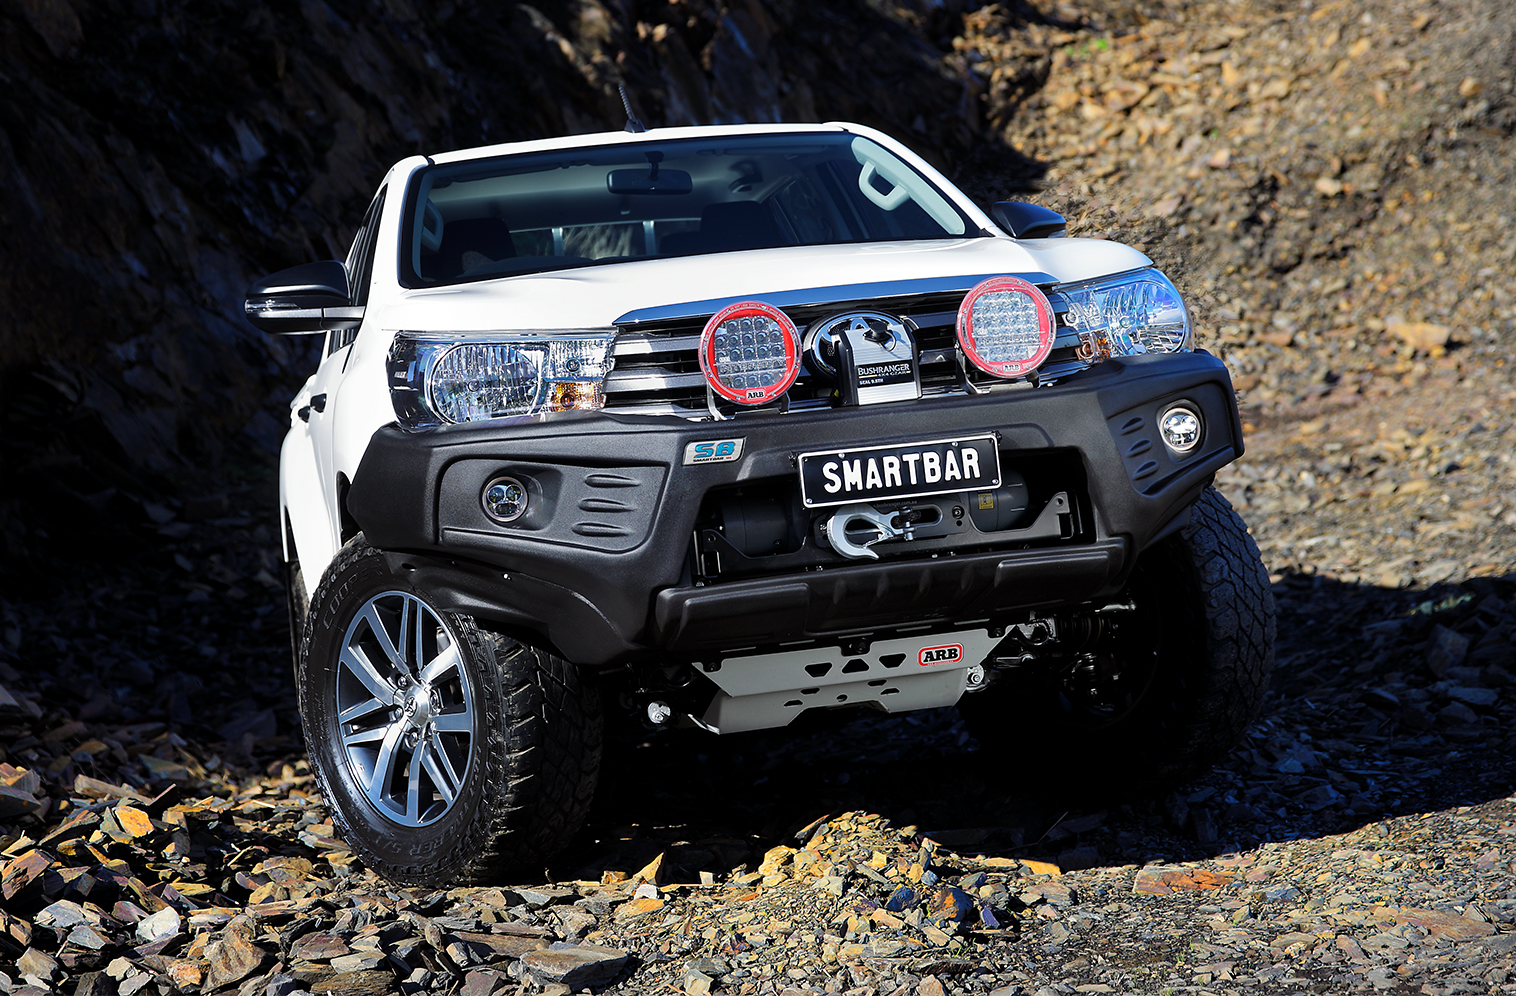 SmartBar StealthBar on a Toyota HiLux